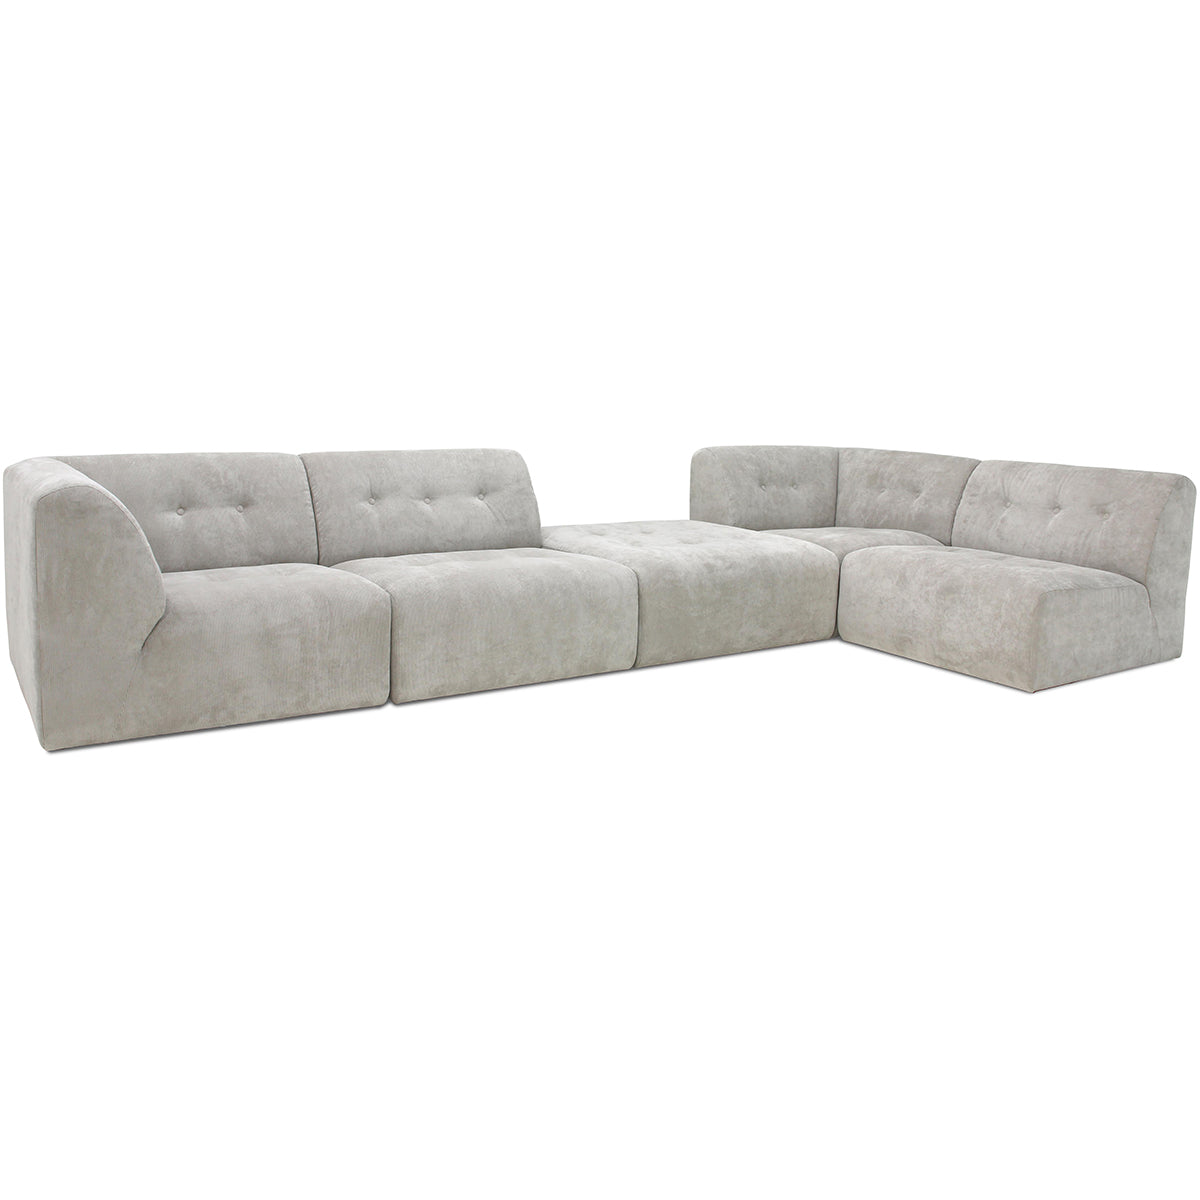 HK Living vint couch: element middle, corduroy rib, cream